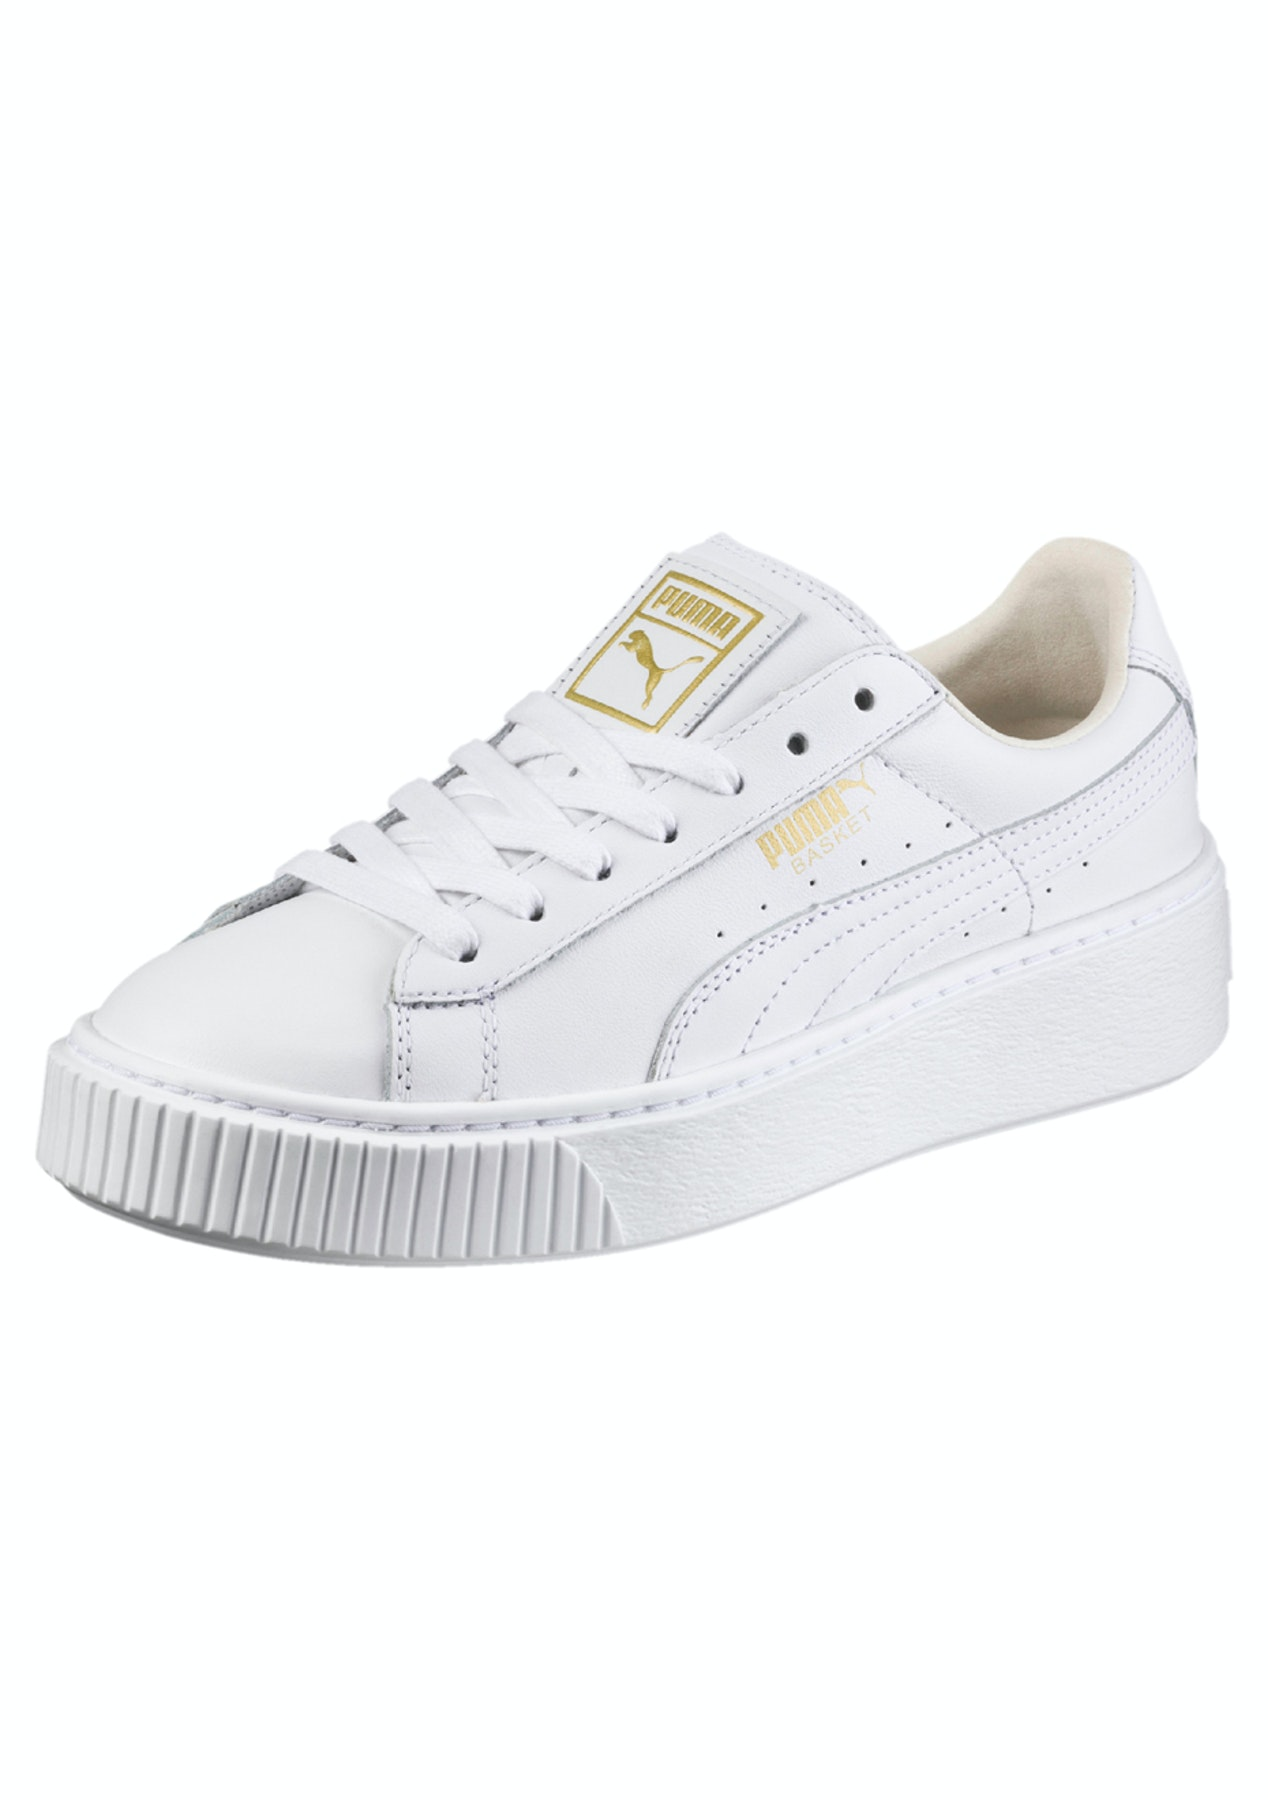 b802cac03f4 Puma Womens - Basket Platform Core White - Gold - Activewear Outlet - Onceit